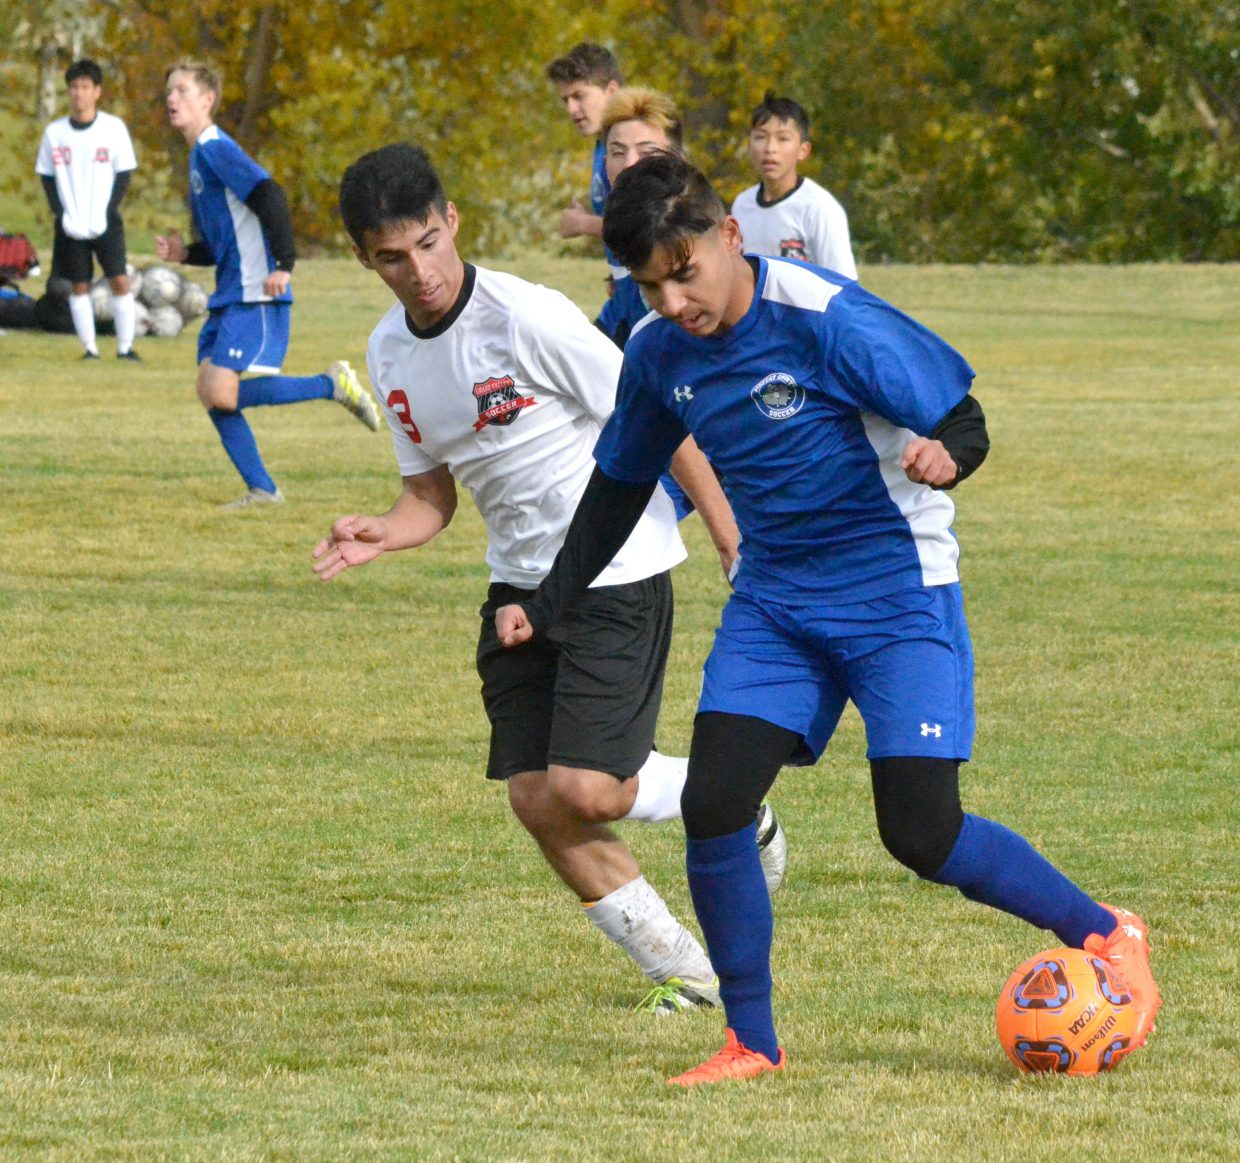 Moffat County High School's Christian Orona pushes the ball forward against Grand Valley.